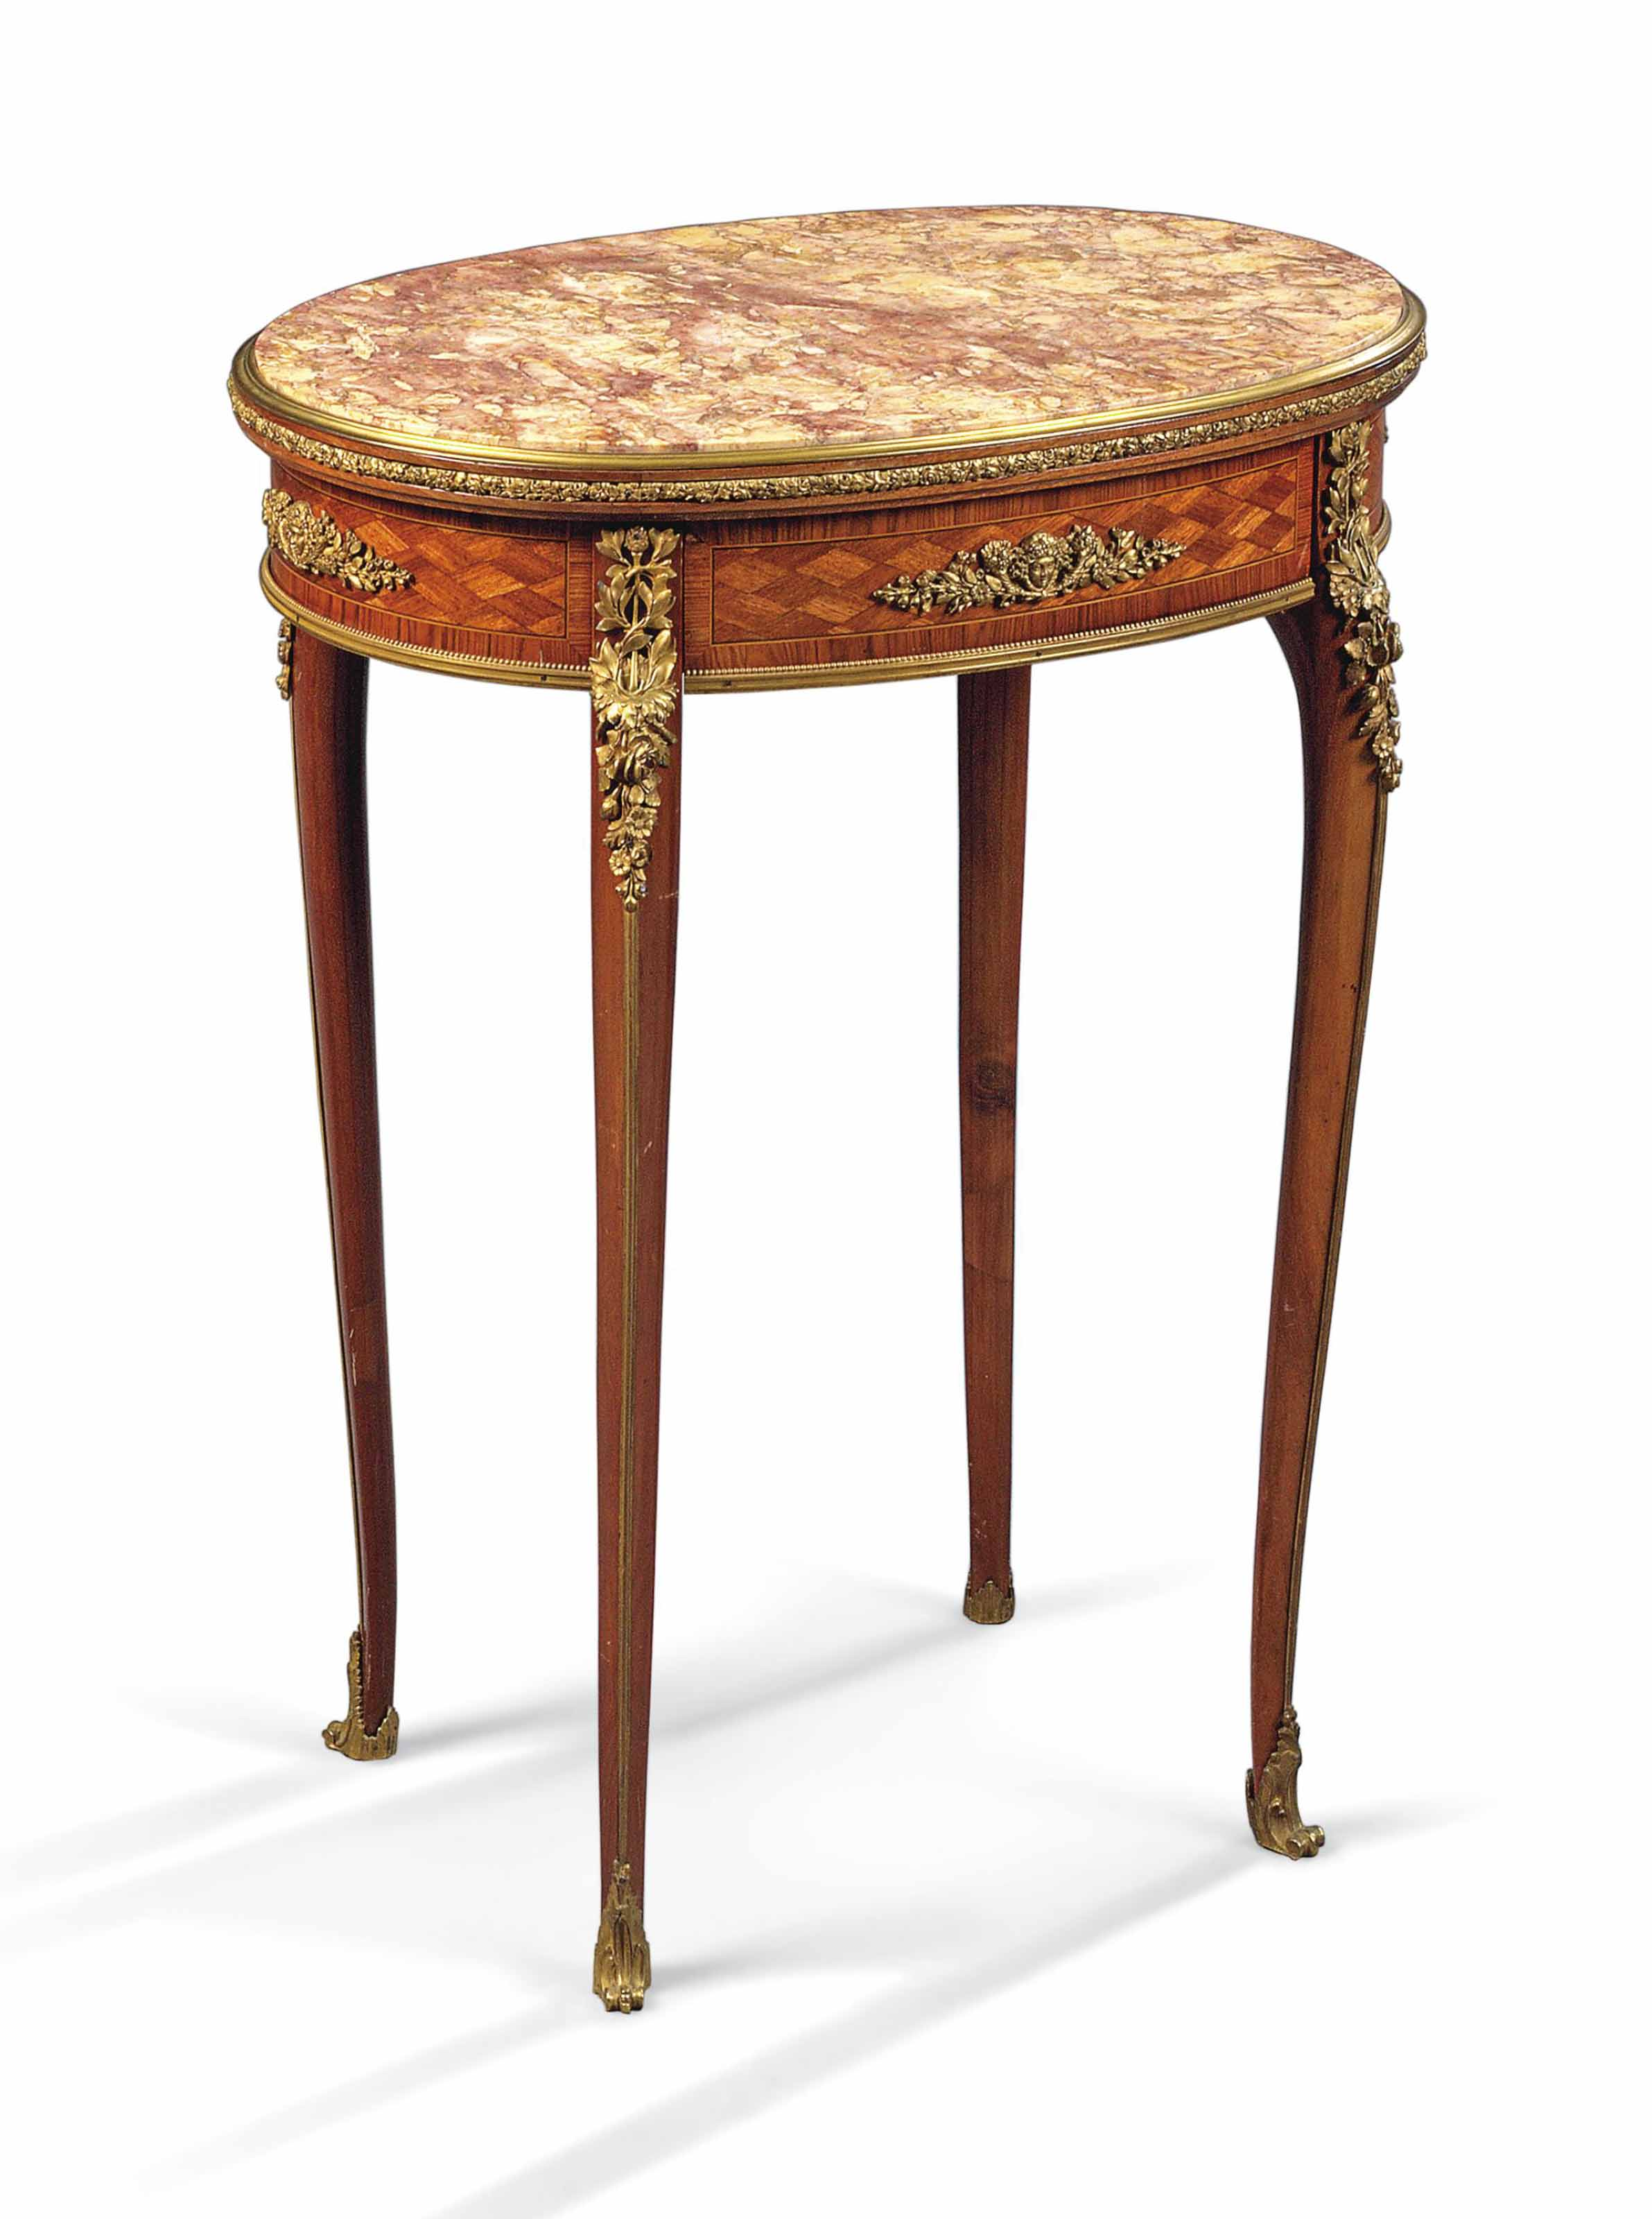 A FRENCH ORMOLU-MOUNTED MAHOGANY, TULIPWOOD AND BOIS SATINE GUERIDON